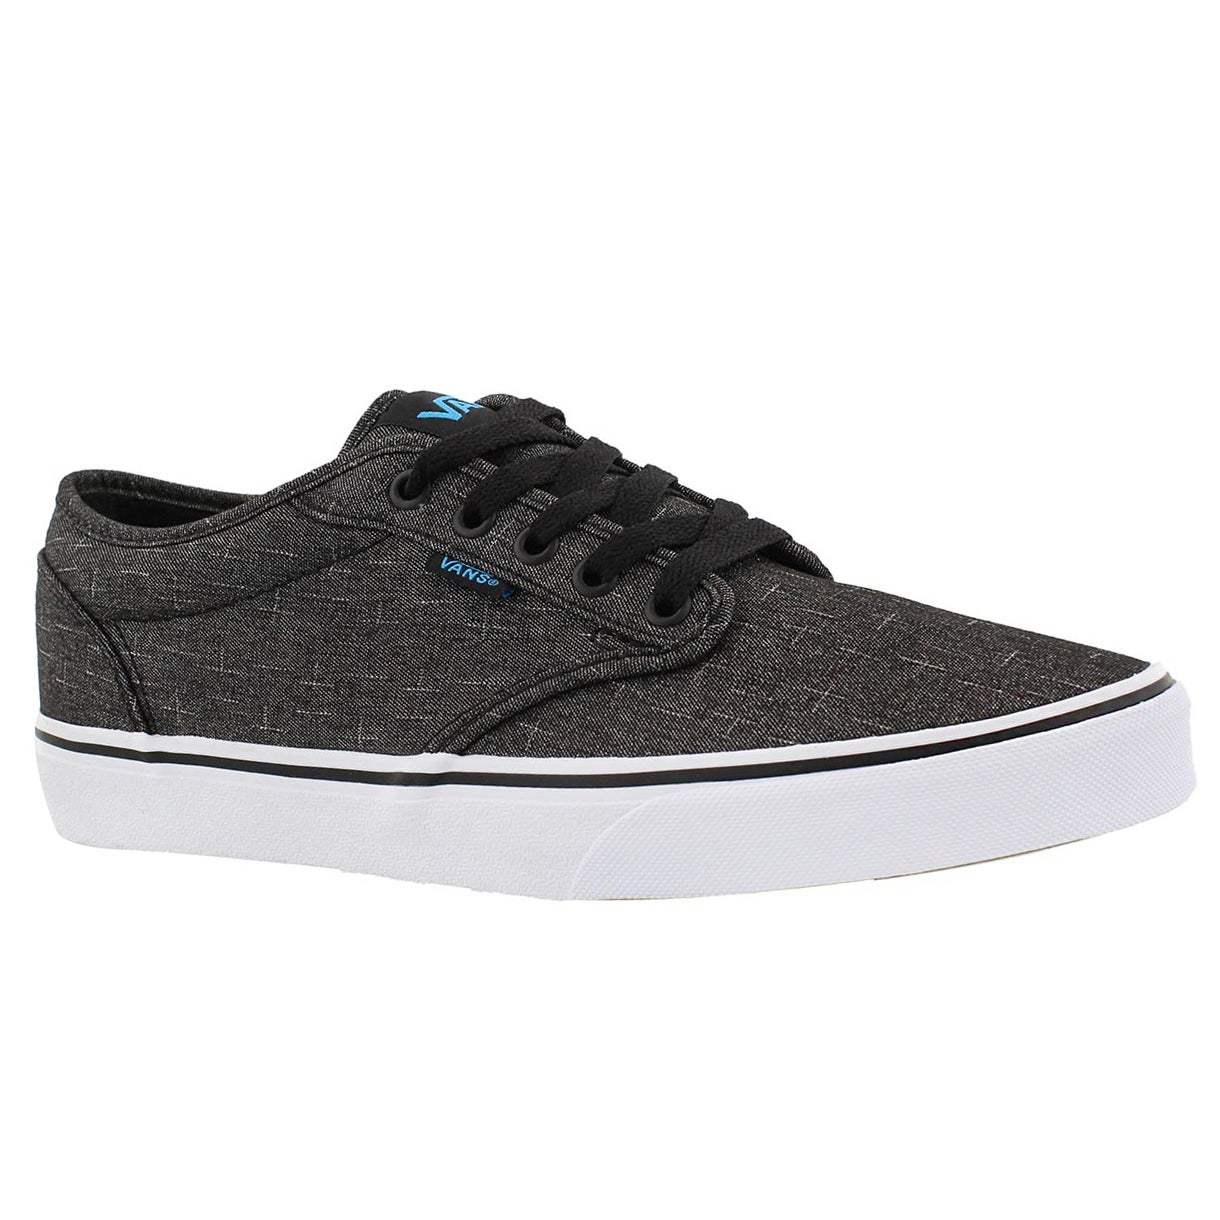 Mns Atwood blk/blu laceup sneaker